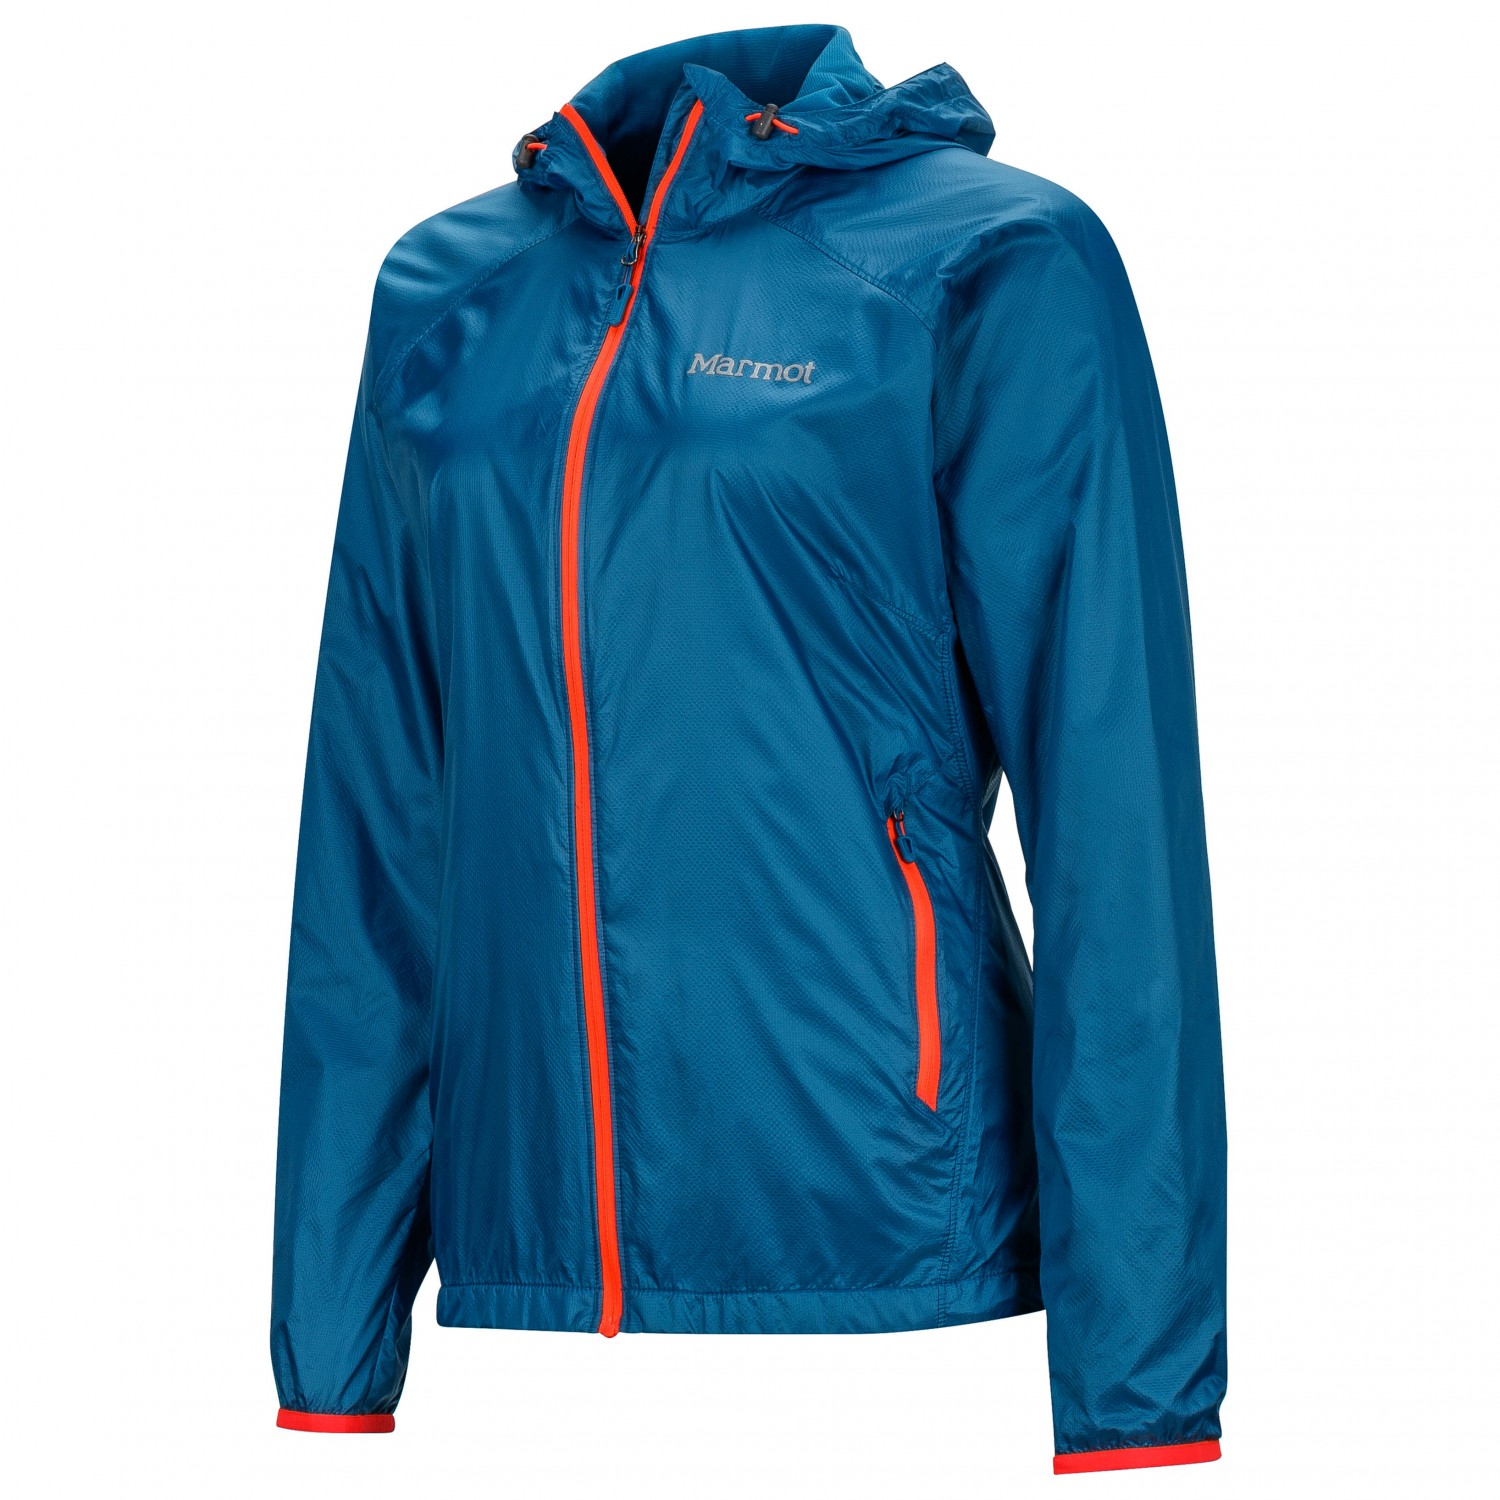 Marmot Ether DriClime Hoody Running Jacket Women's | Buy